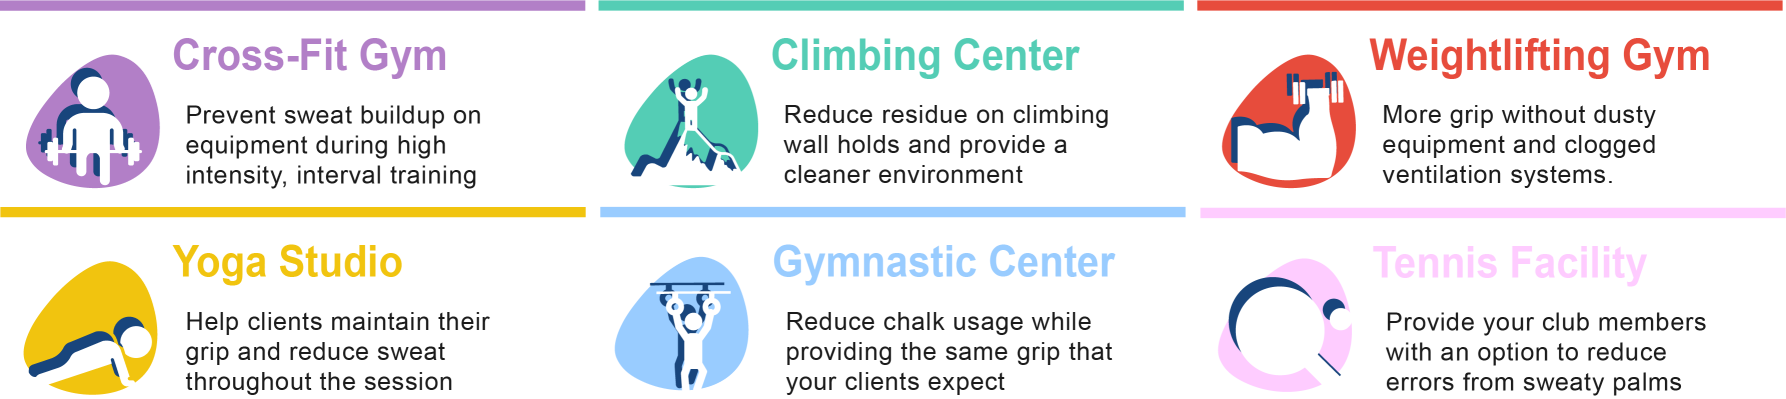 Graphic showing the benefit of liquid chalk in various gyms, climbing centers, and fitness centers